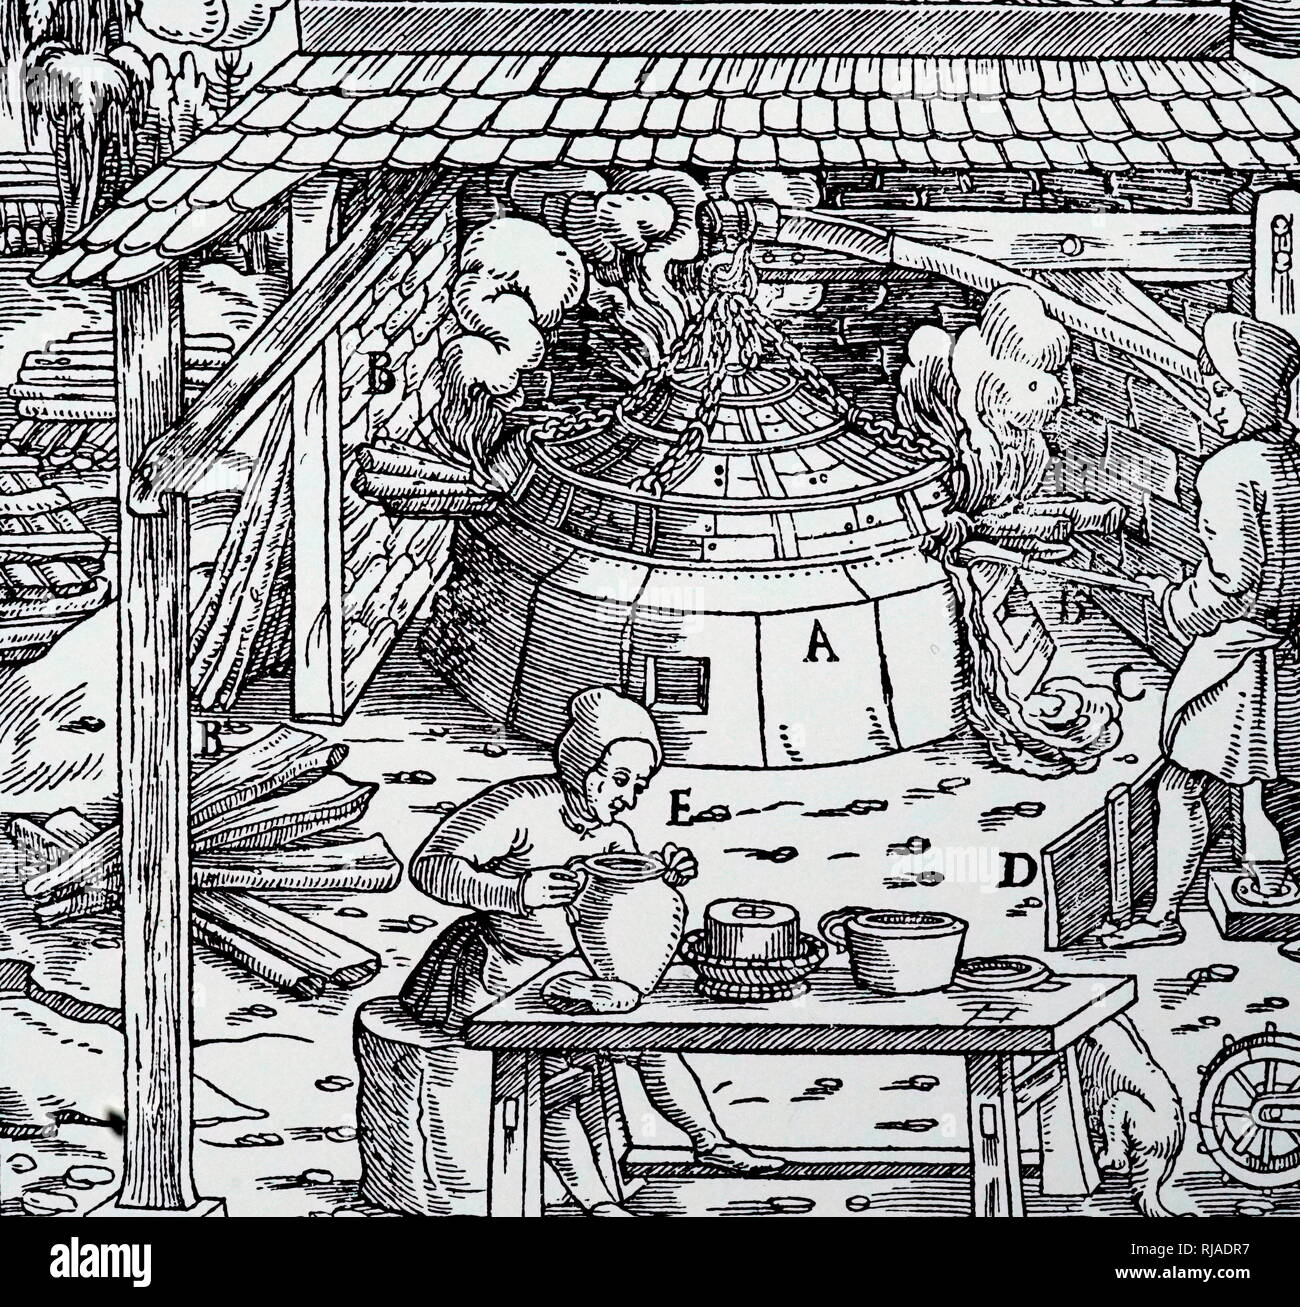 A woodcut engraving depicting the separation of lead from silver or gold in a cupellation furnace. Dated 16th century - Stock Image